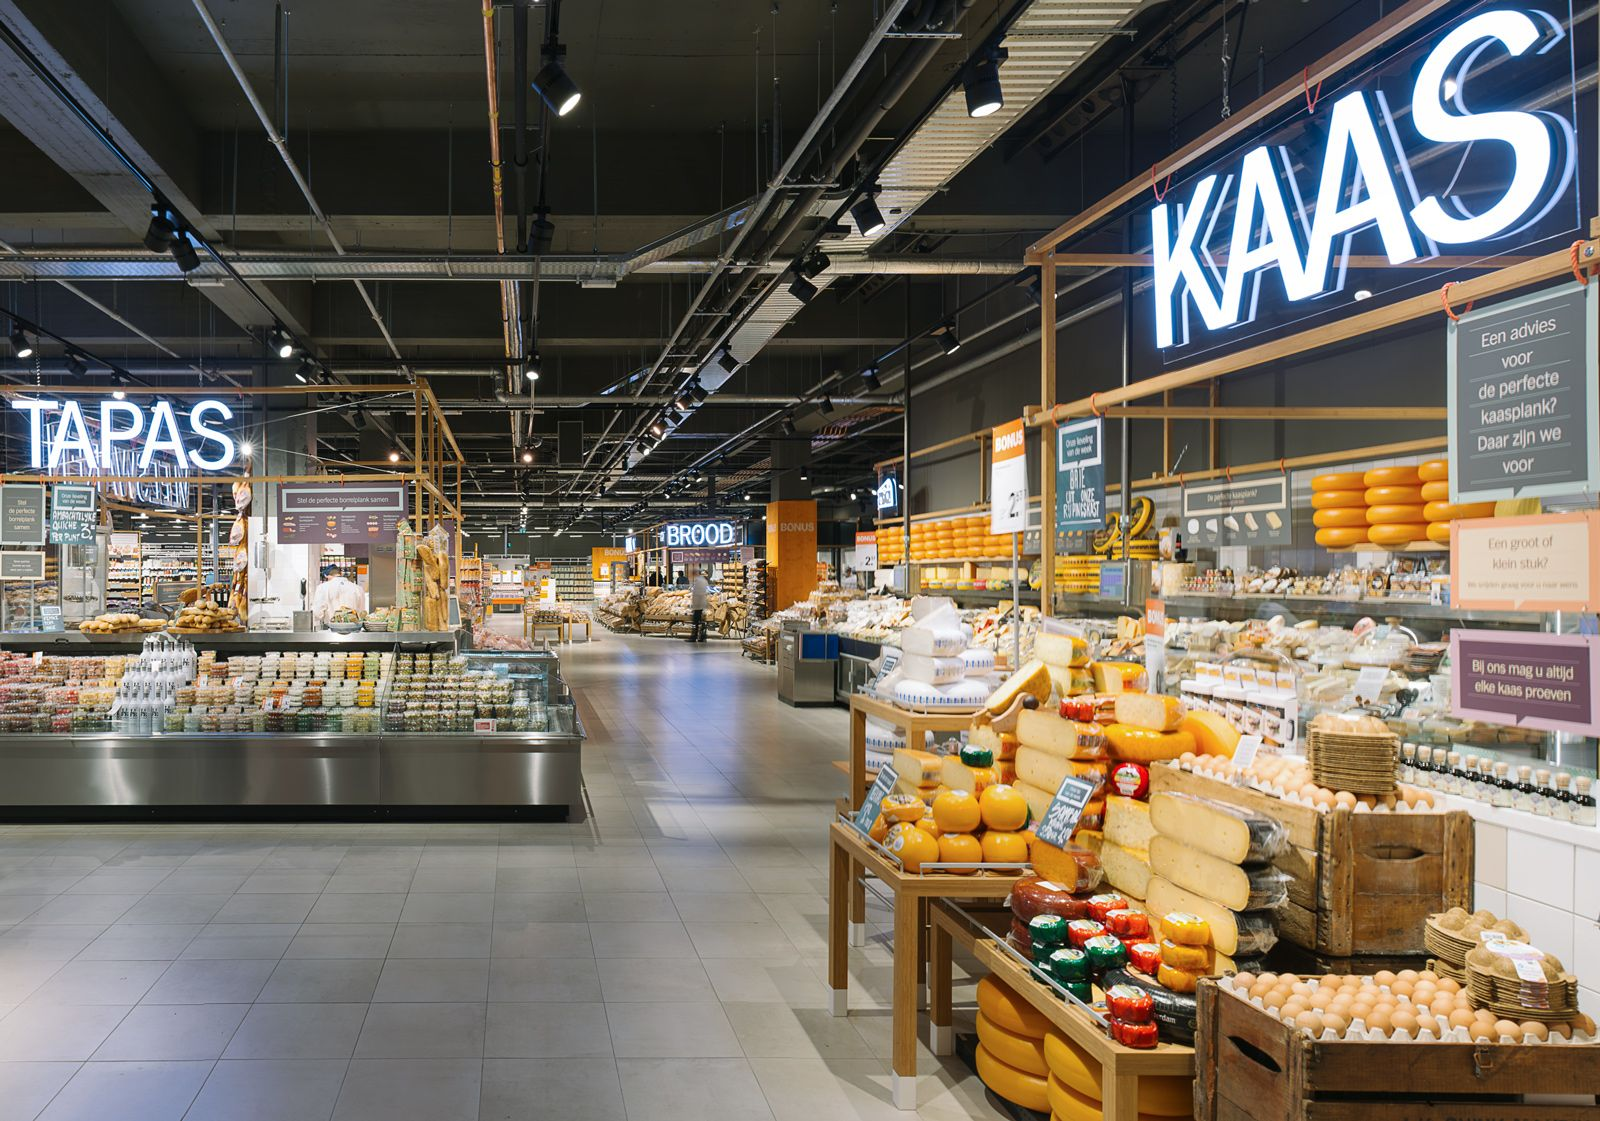 Pin By Adrienne Roch On Retail Indoor Markets Design Agency Grocery Store Design